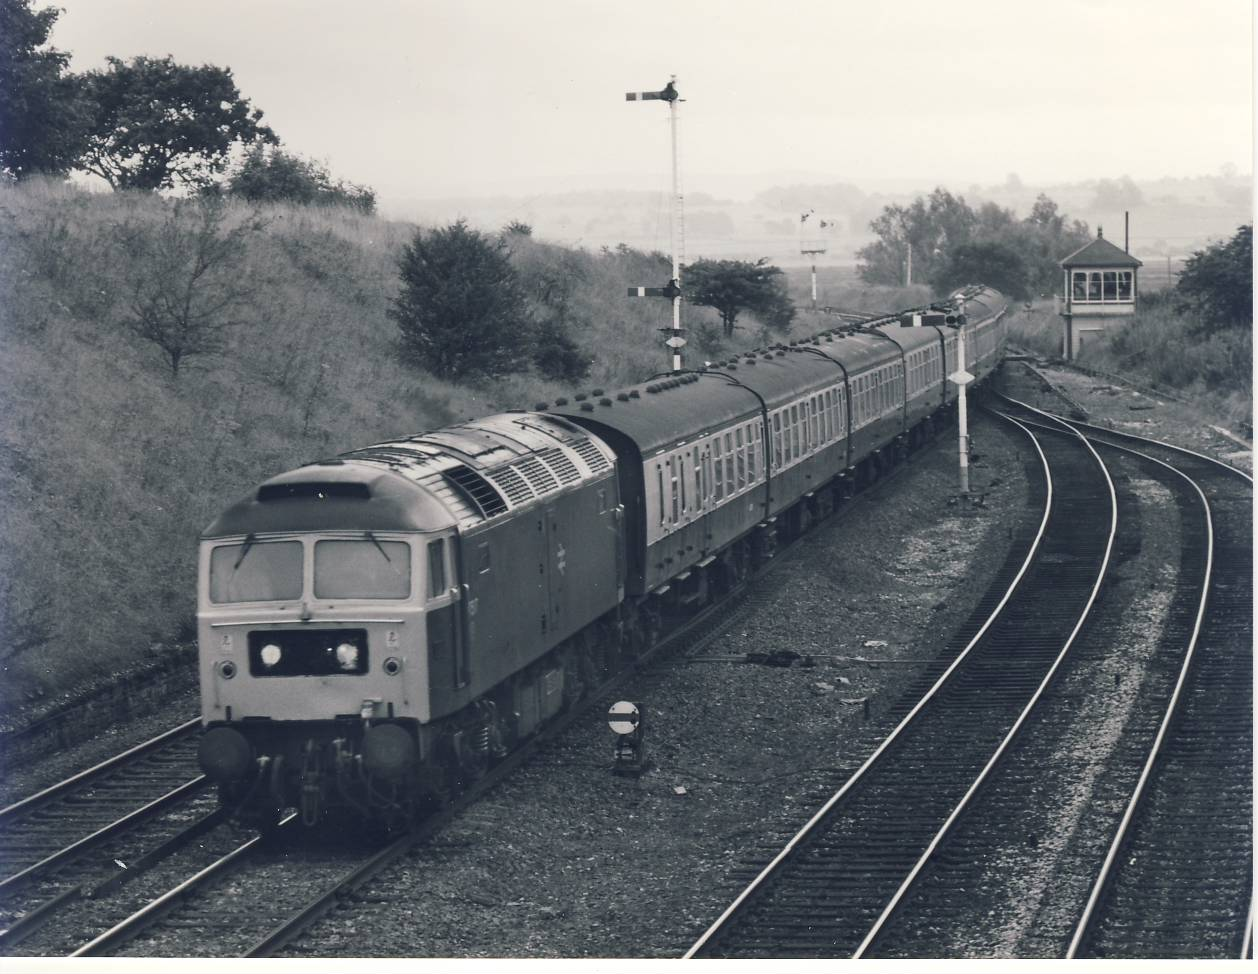 1981 Settle Junction Box 47.517 Train Photo refSC138 Measure approx 6.5 x 8.5 inches / 16cm x 21cm - an original 'W.A.Sharman' black and white photographic print pre-owned item in very good condition. Details on reverse.